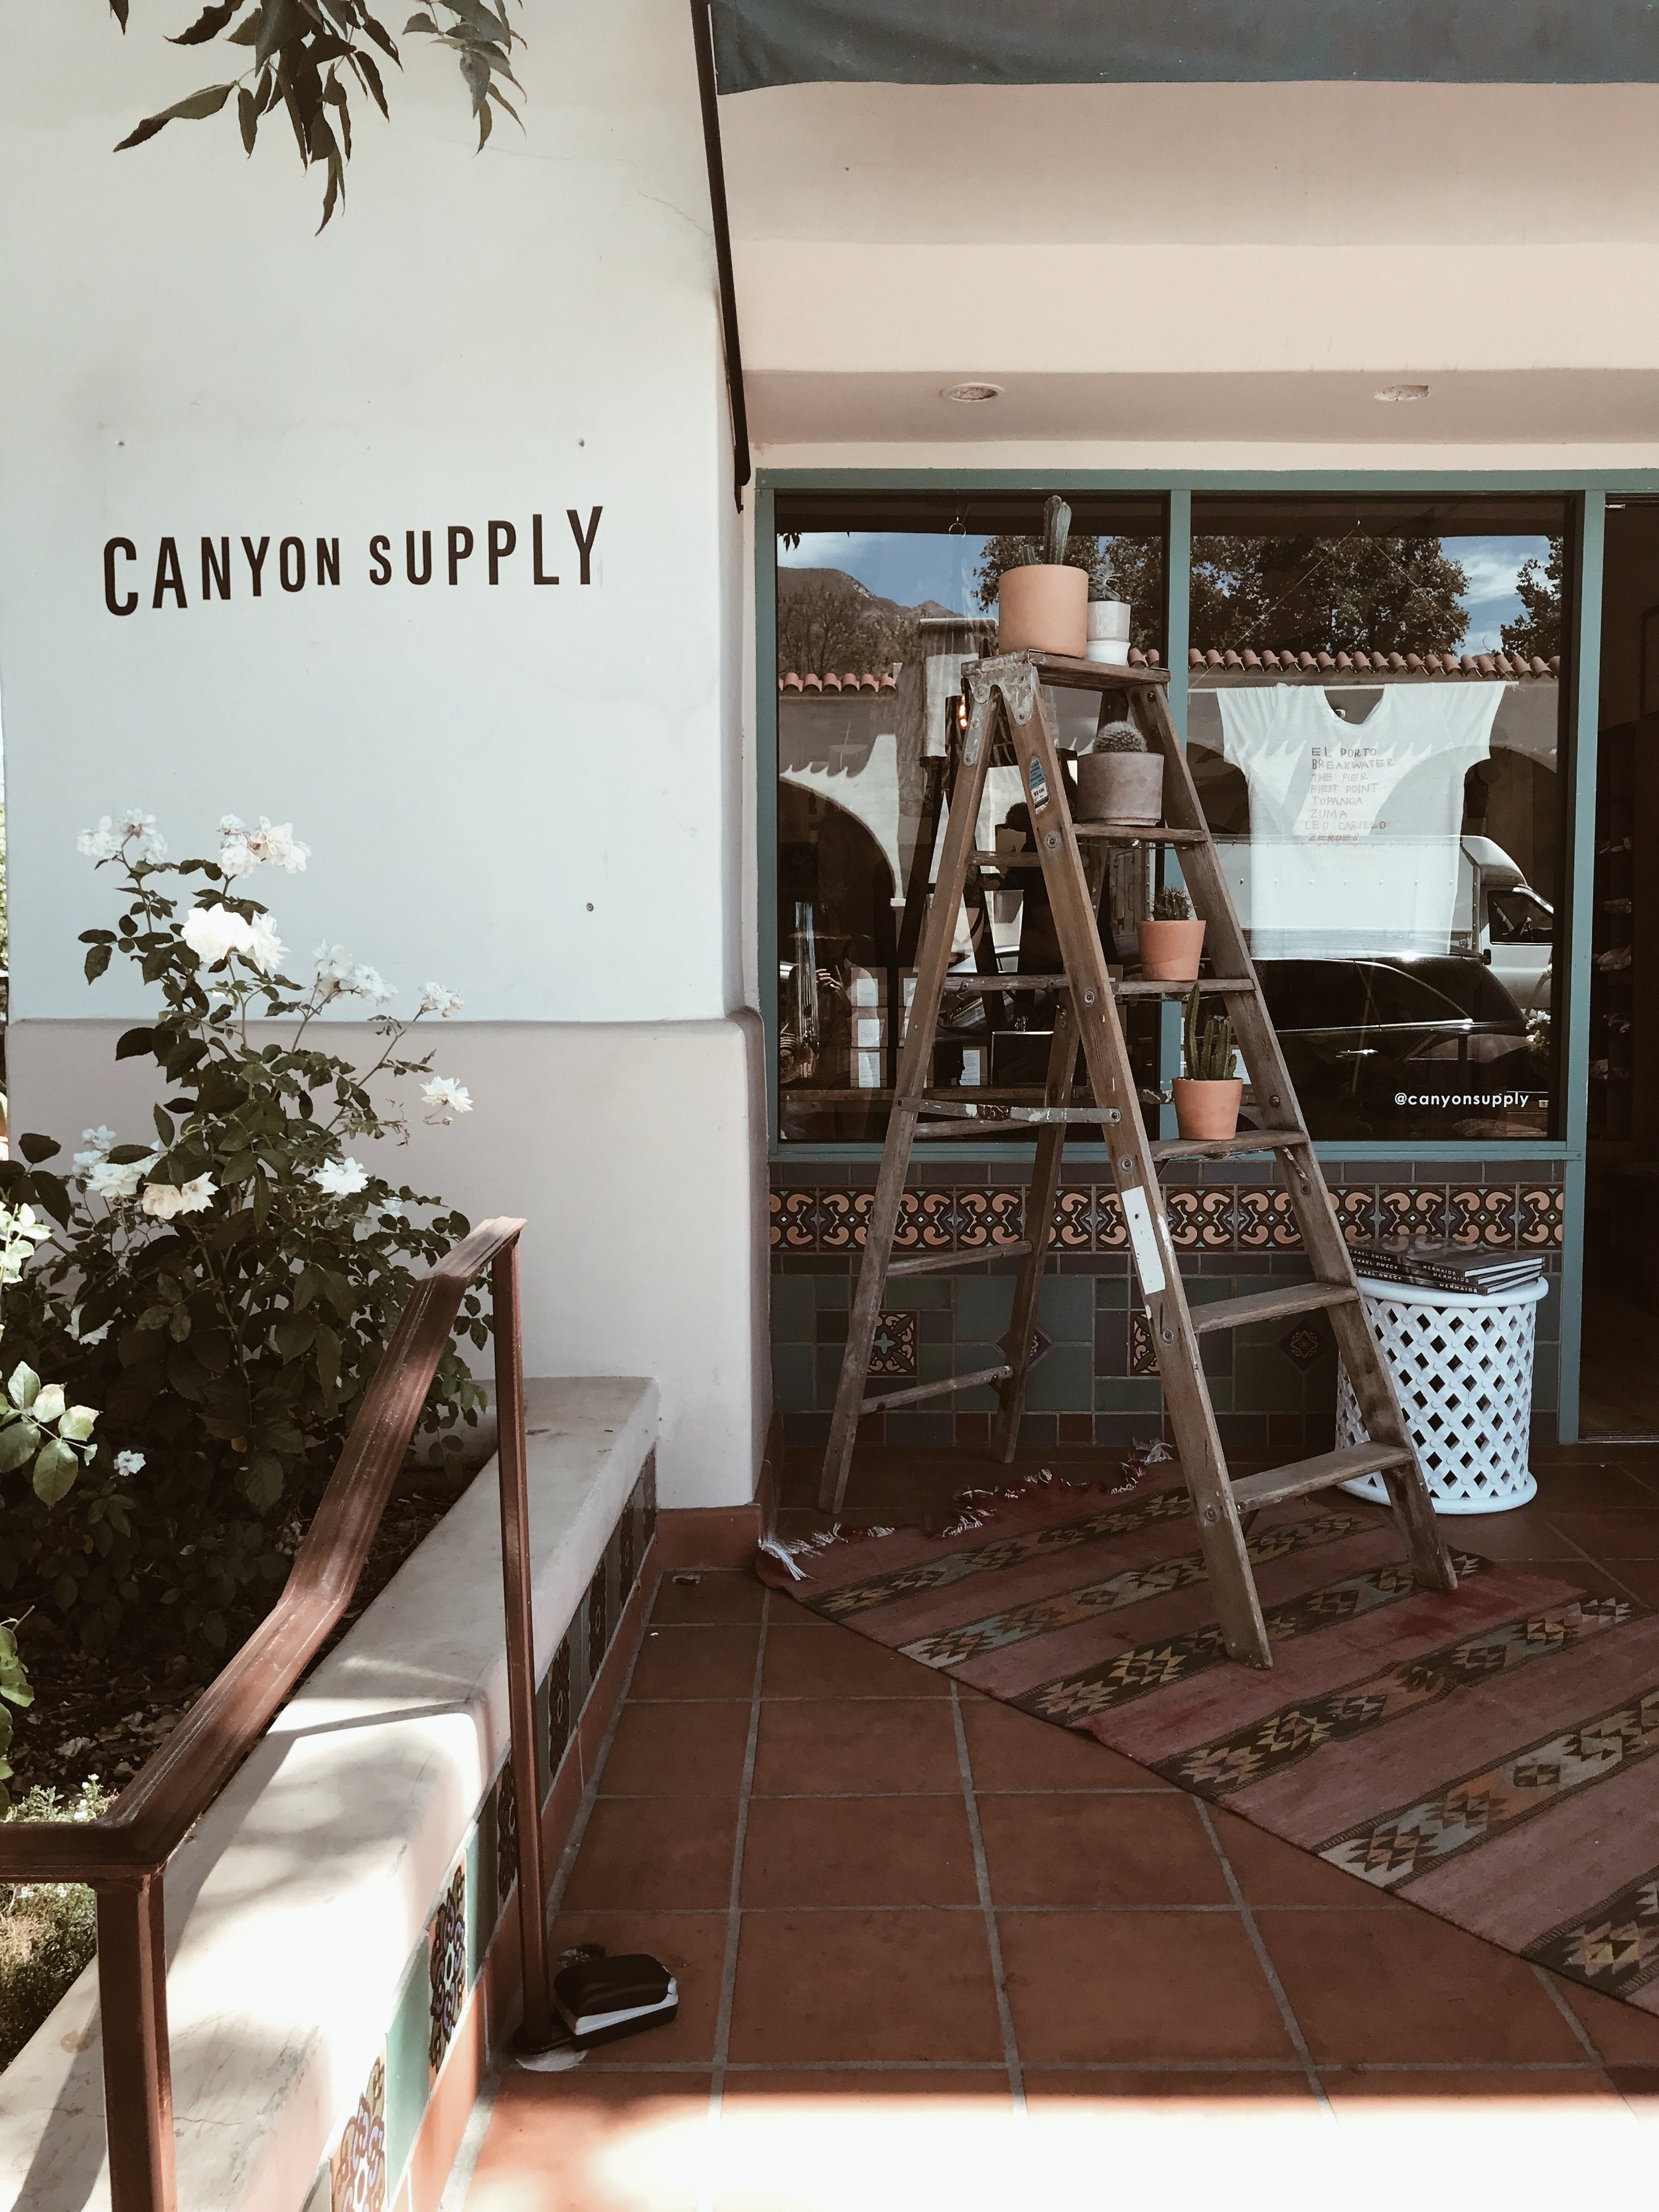 Canyon Supply Store